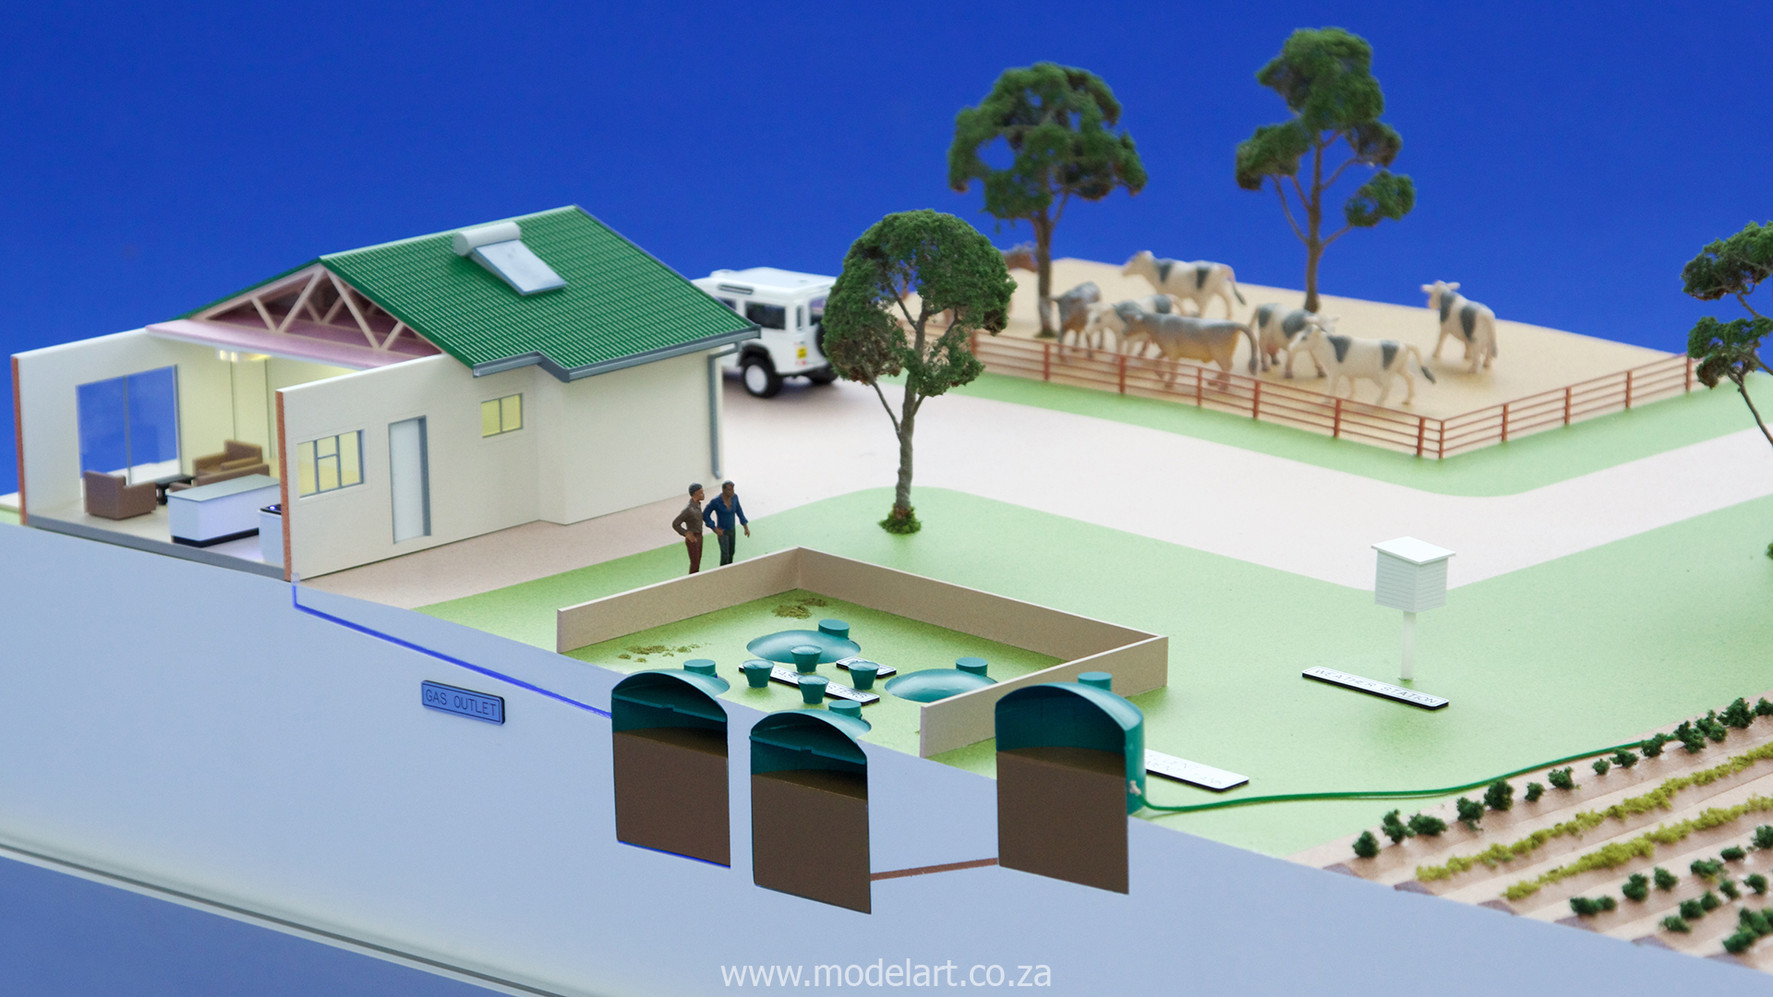 Architectural-Scale-Model-Industrial-Afgri Biogas-6